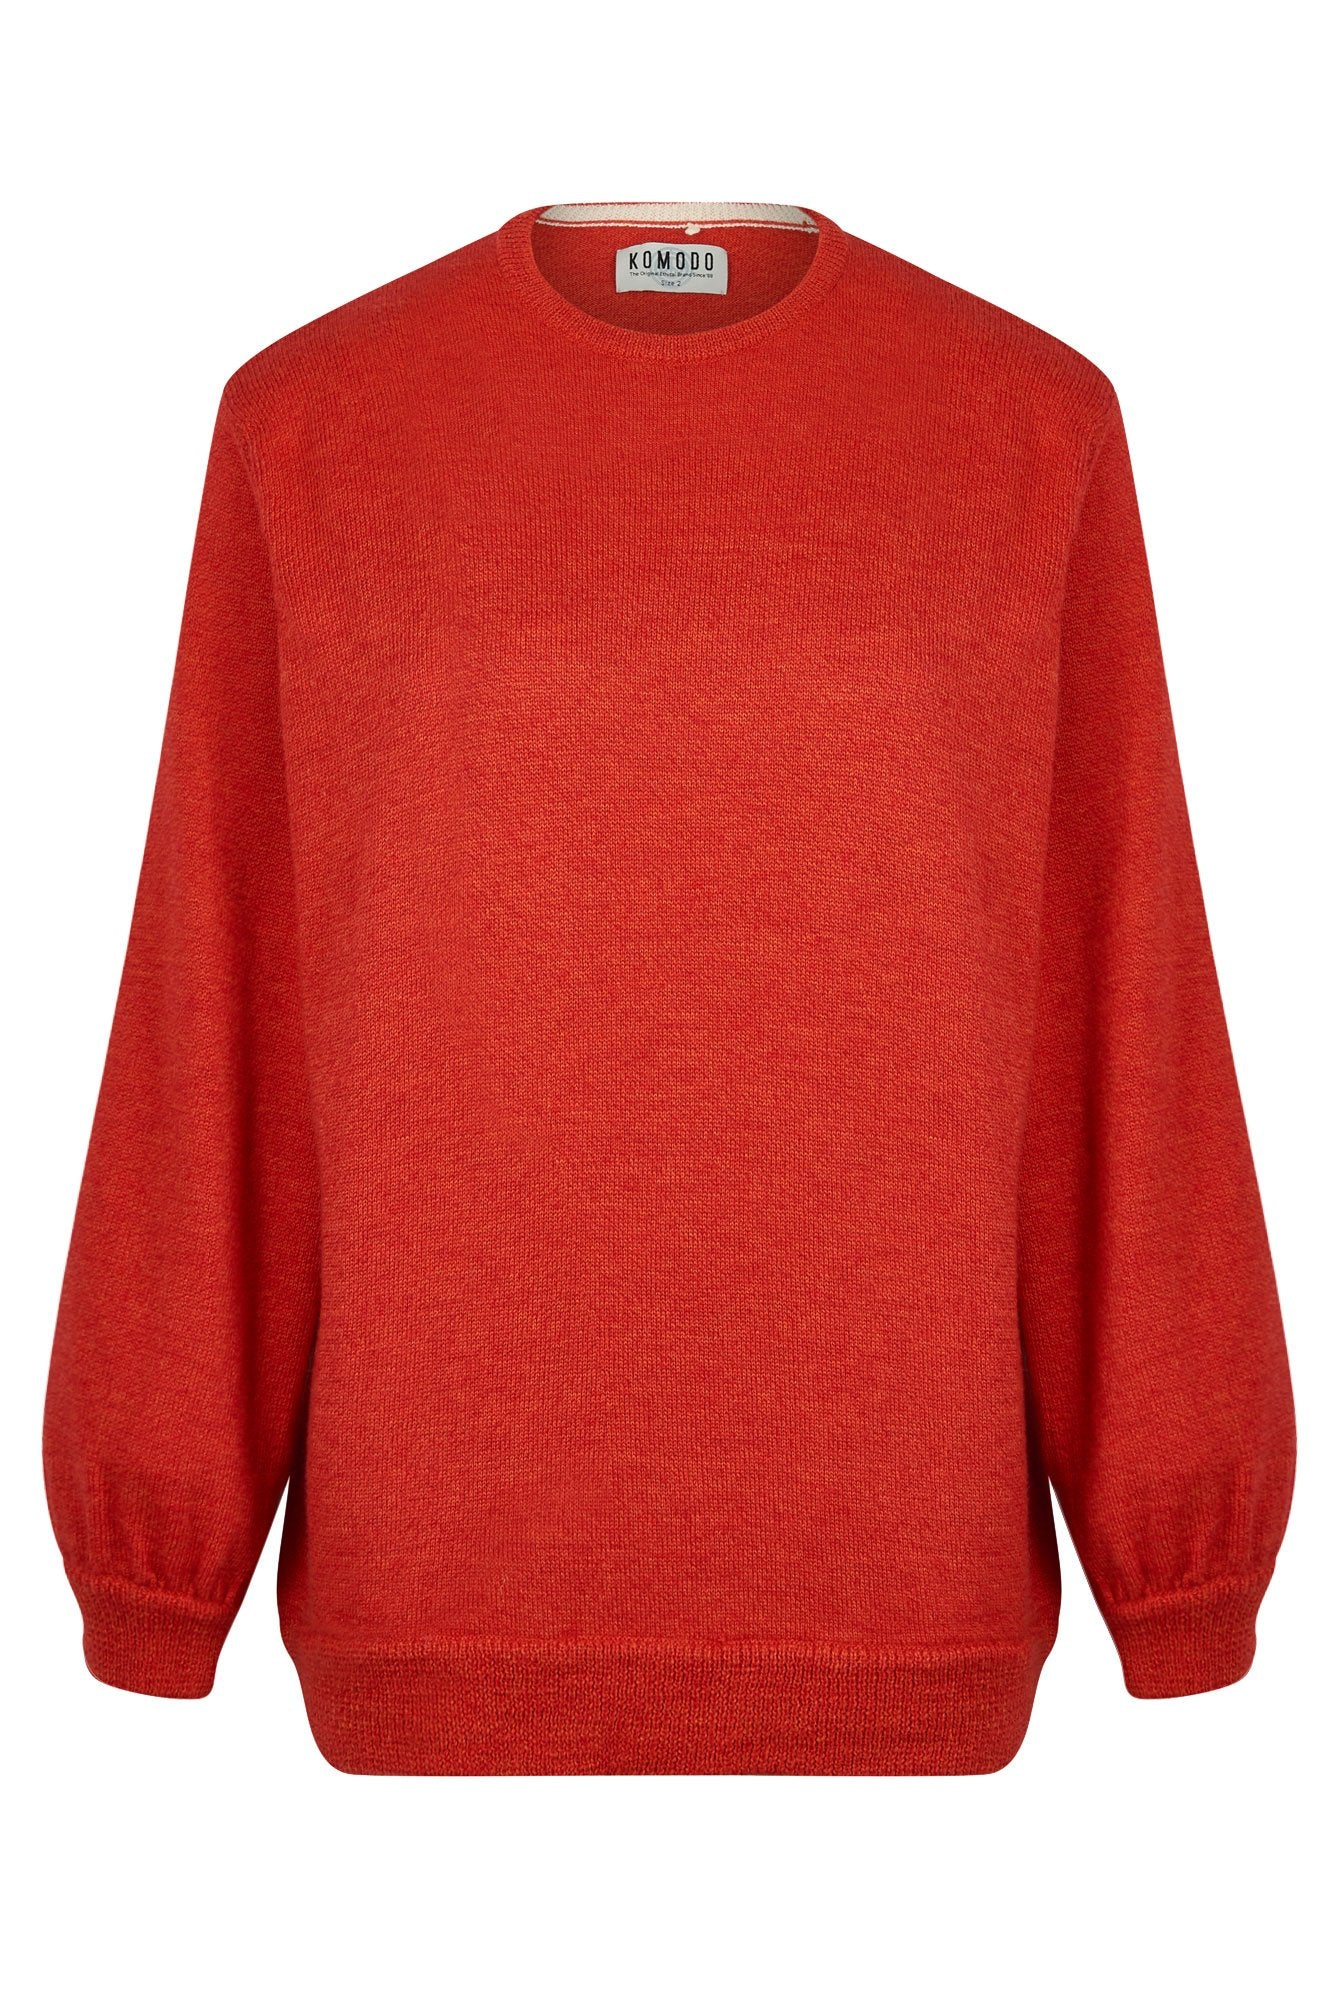 TYLA Merino Jumper Koi Red